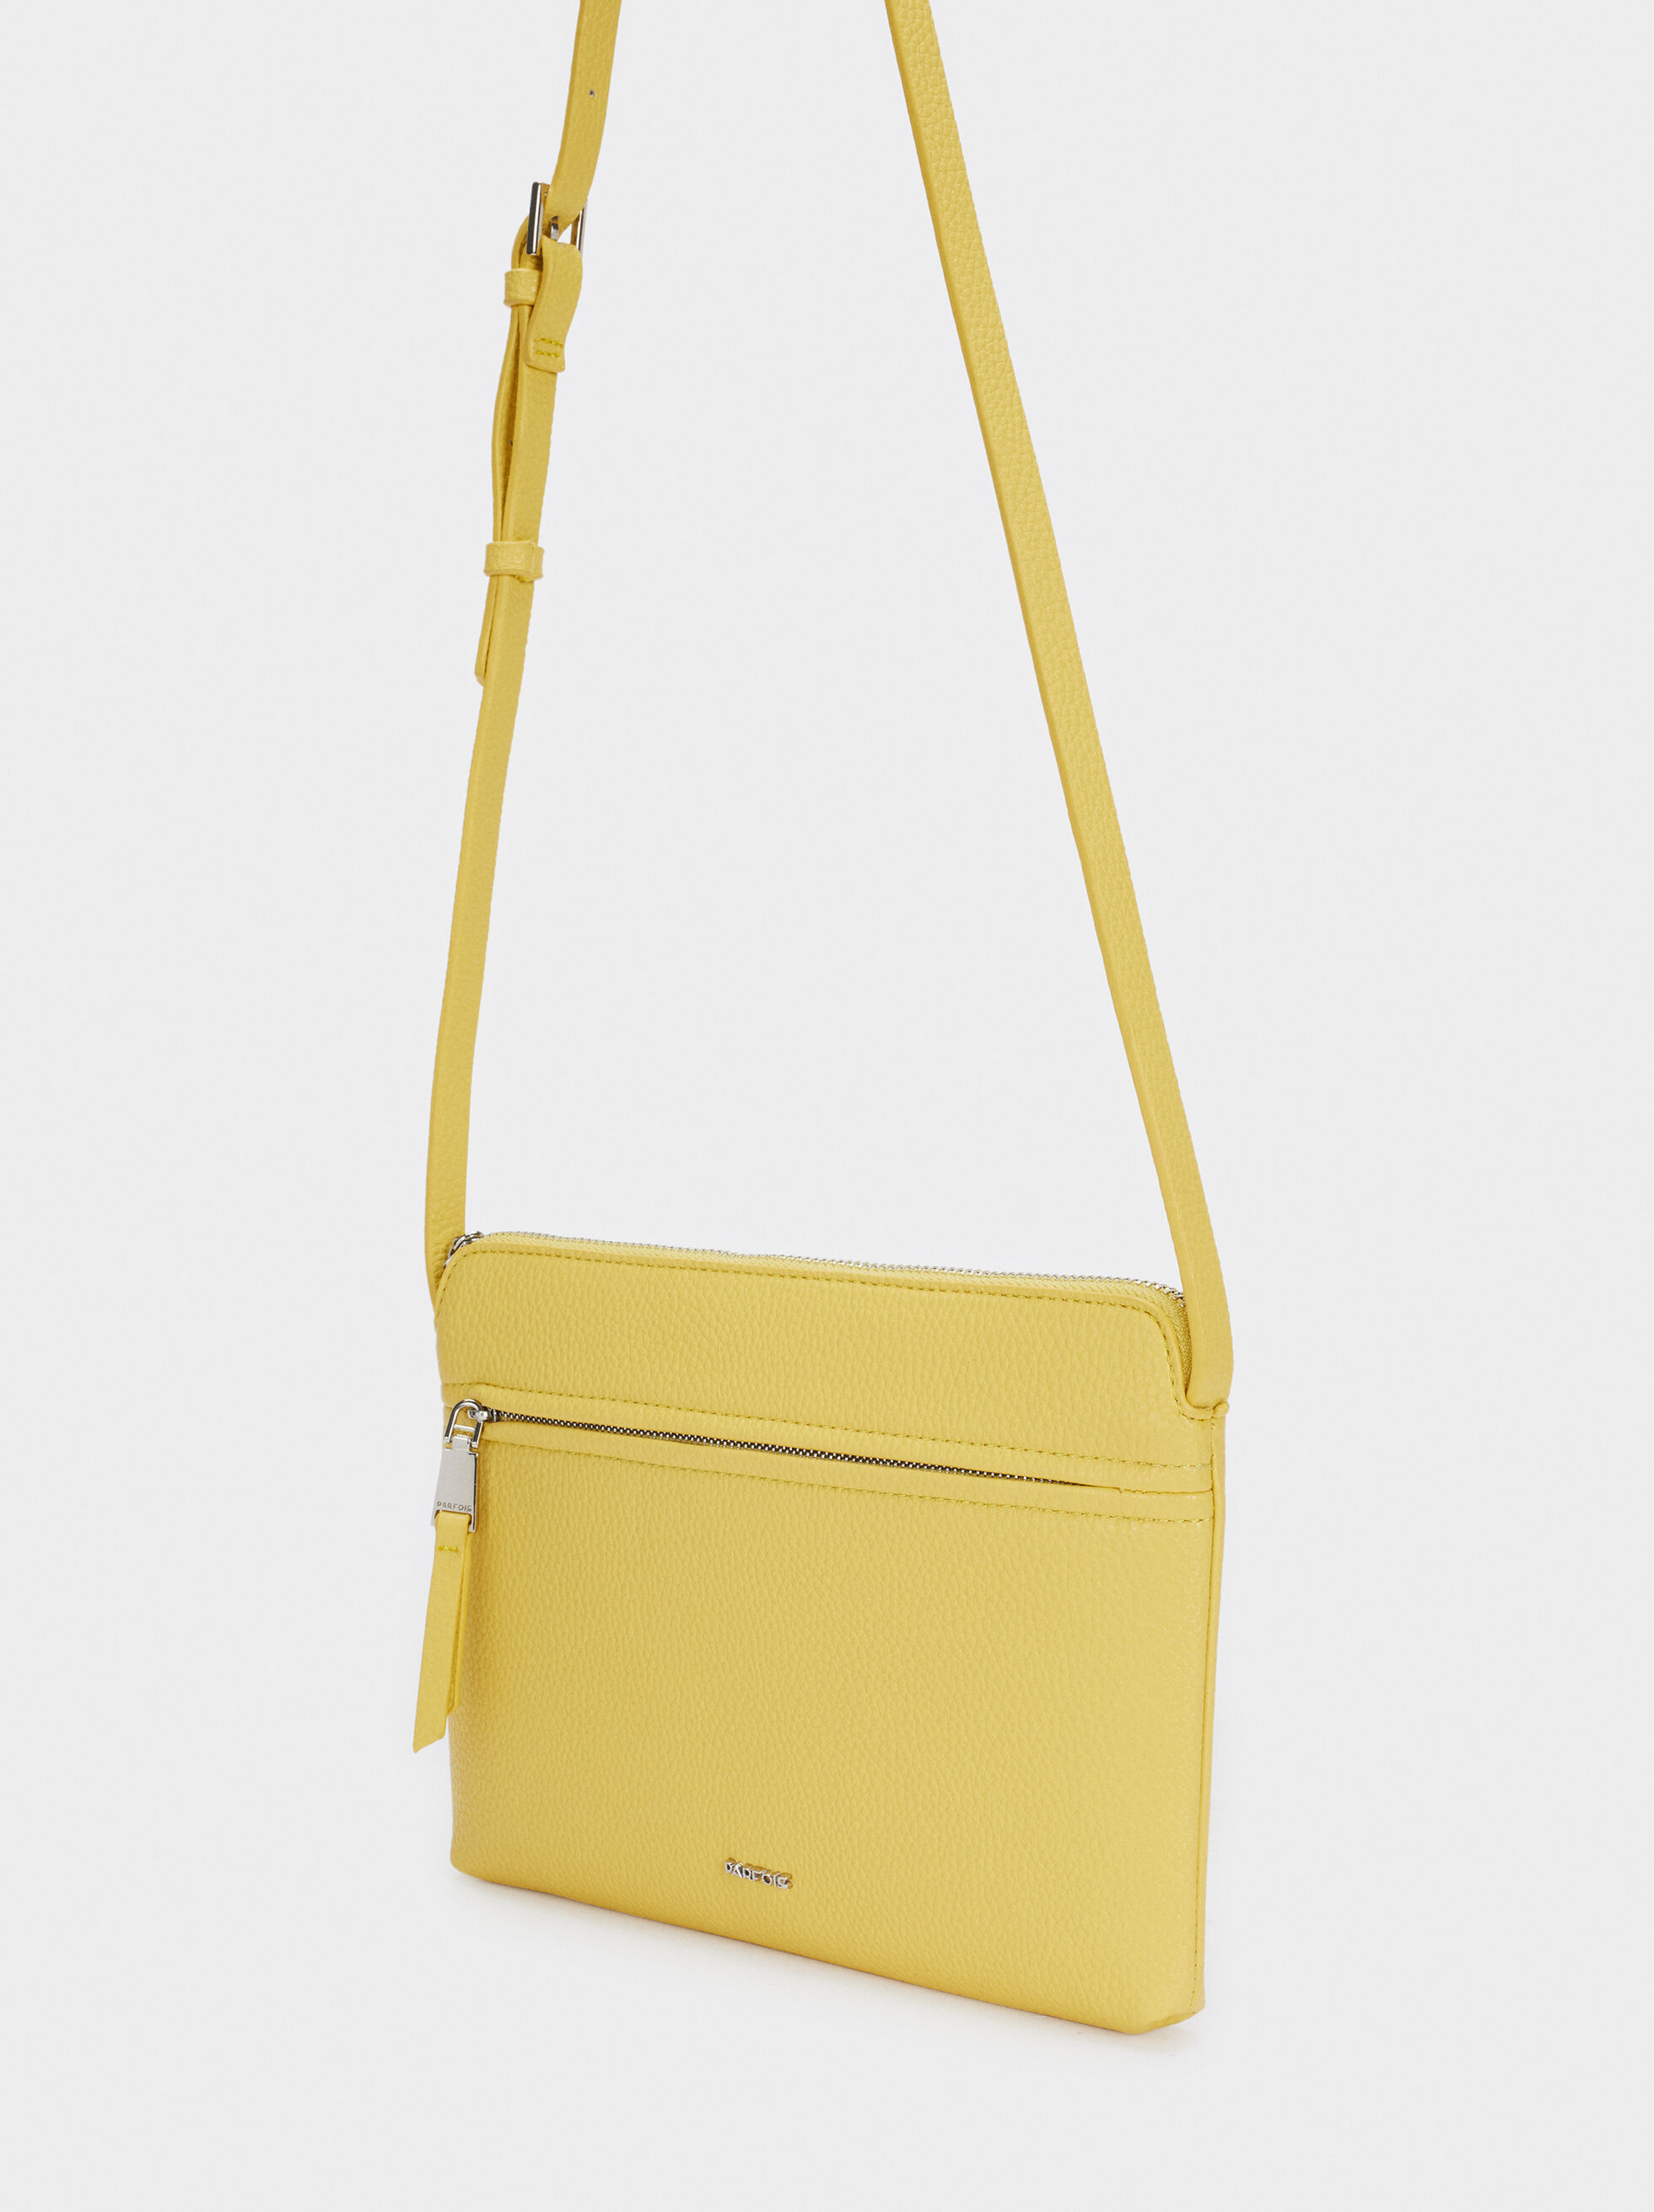 Crossbody Bag With Outer Pocket, Yellow, hi-res